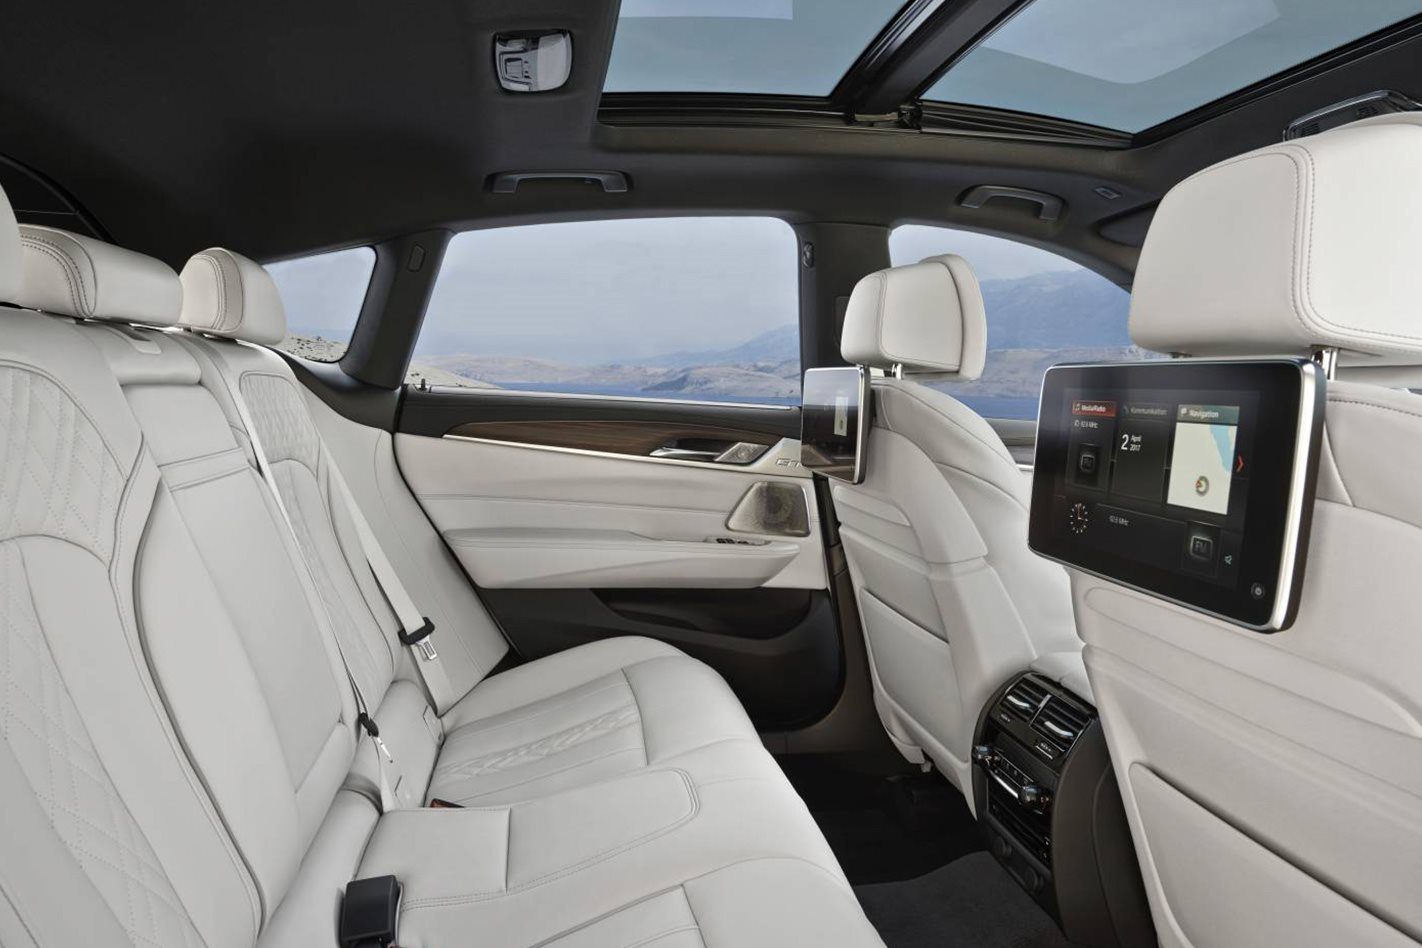 2017-BMW-6-Series-Gran-Turismo-rear-seats.jpg